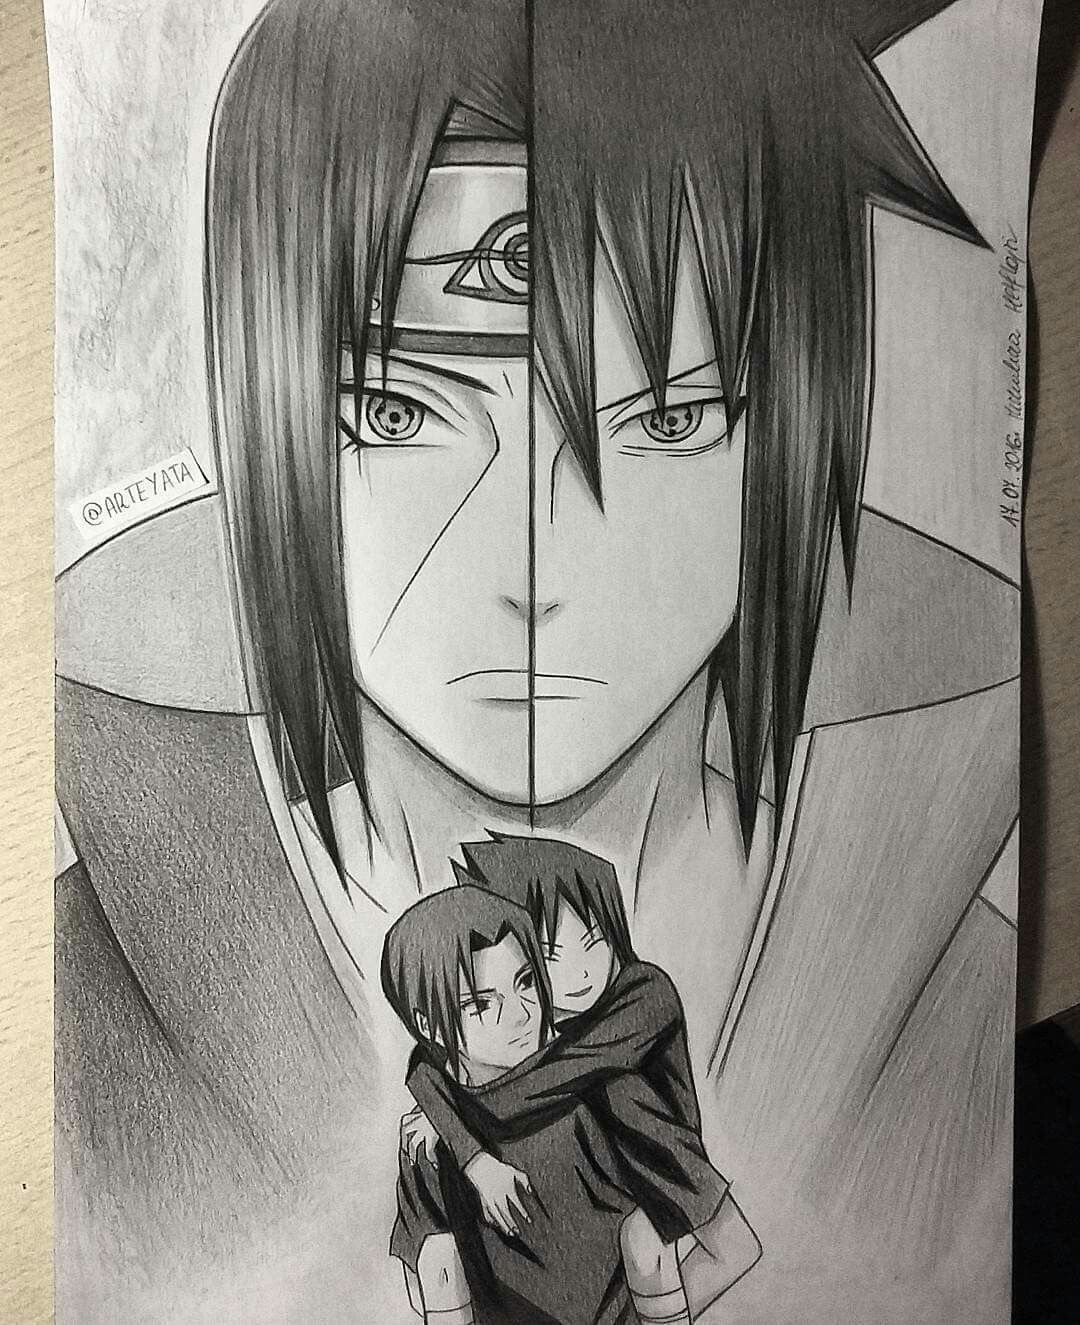 Sasuke and Itachi (not my drawing, credit to whoever did